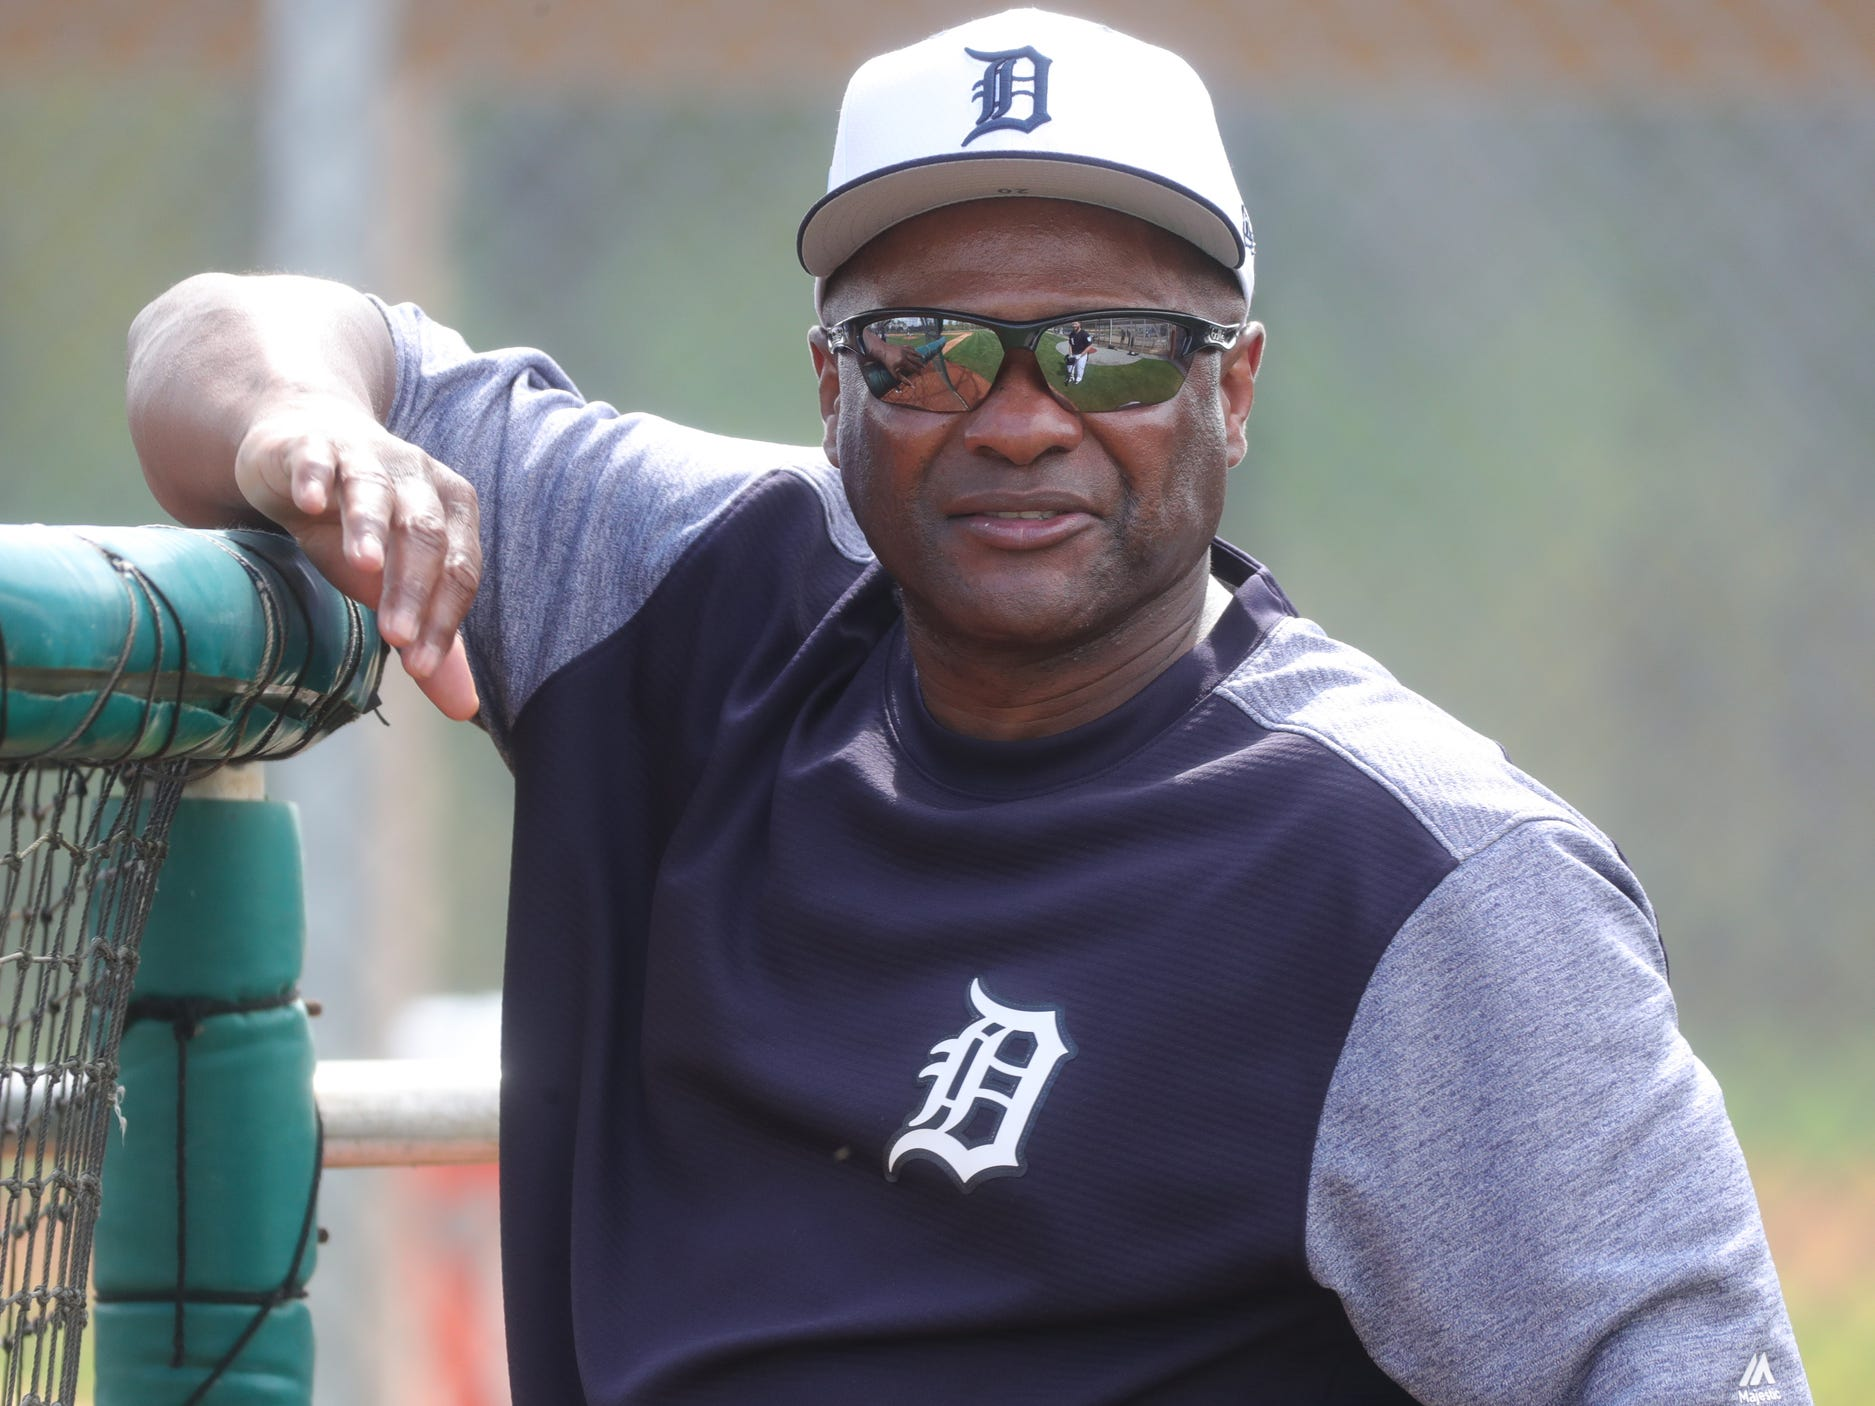 Detroit Tigers coach Lloyd McClendon on the field for the first full team practice Monday, Feb. 18, 2019 at Joker Marchant Stadium in Lakeland, Fla.